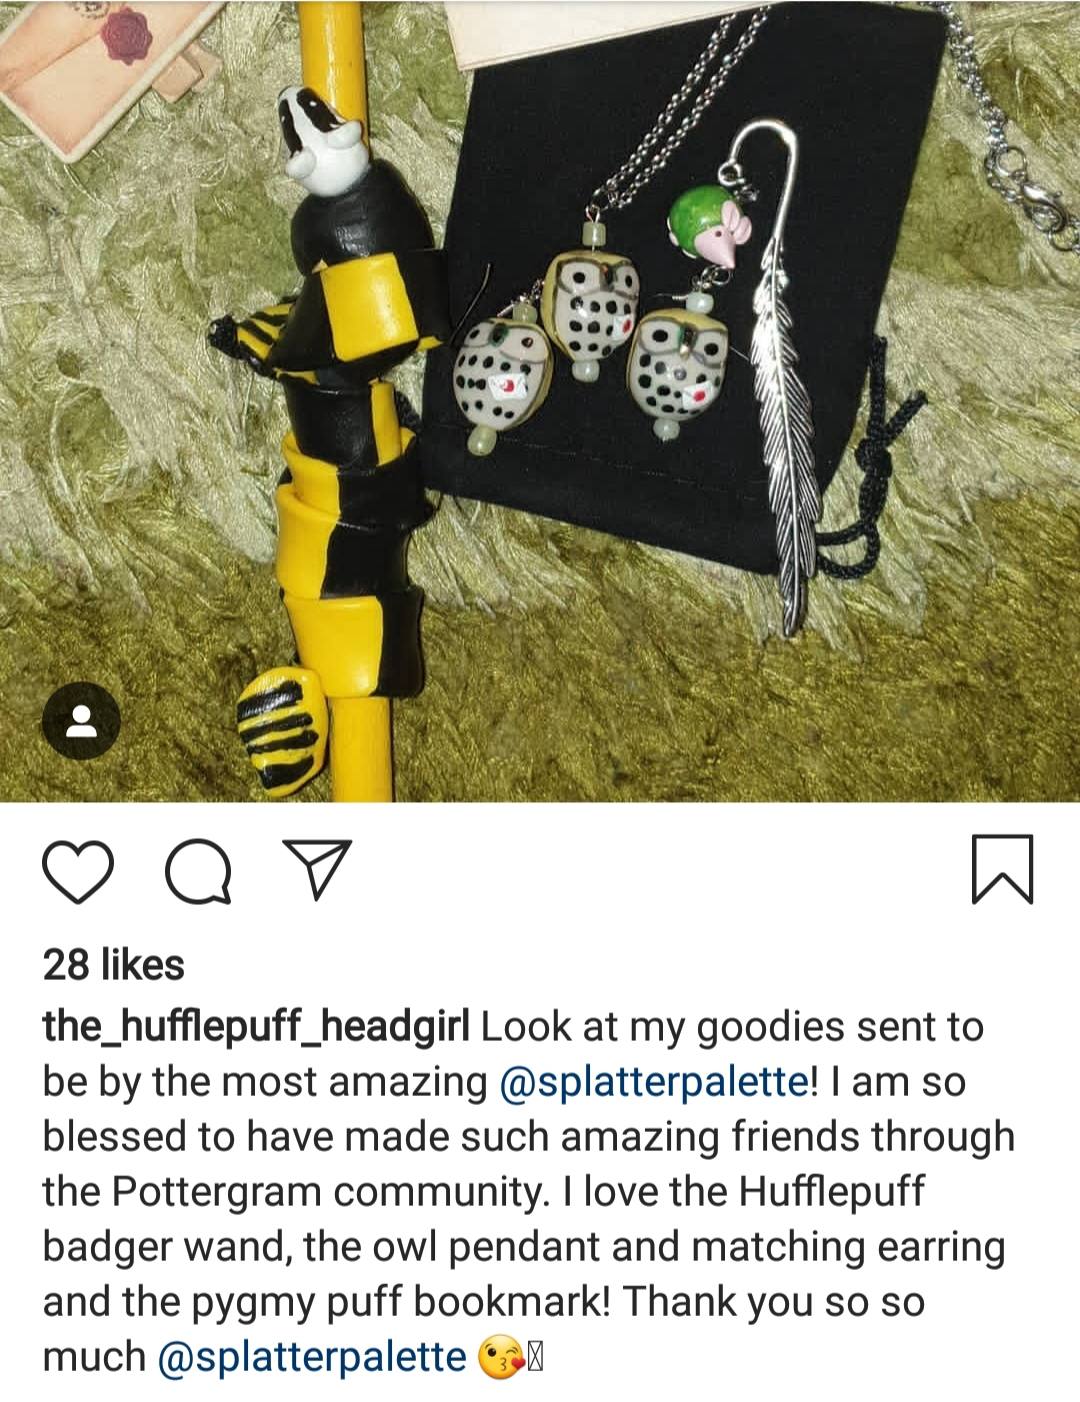 Gifts to a Hufflepuff friend!